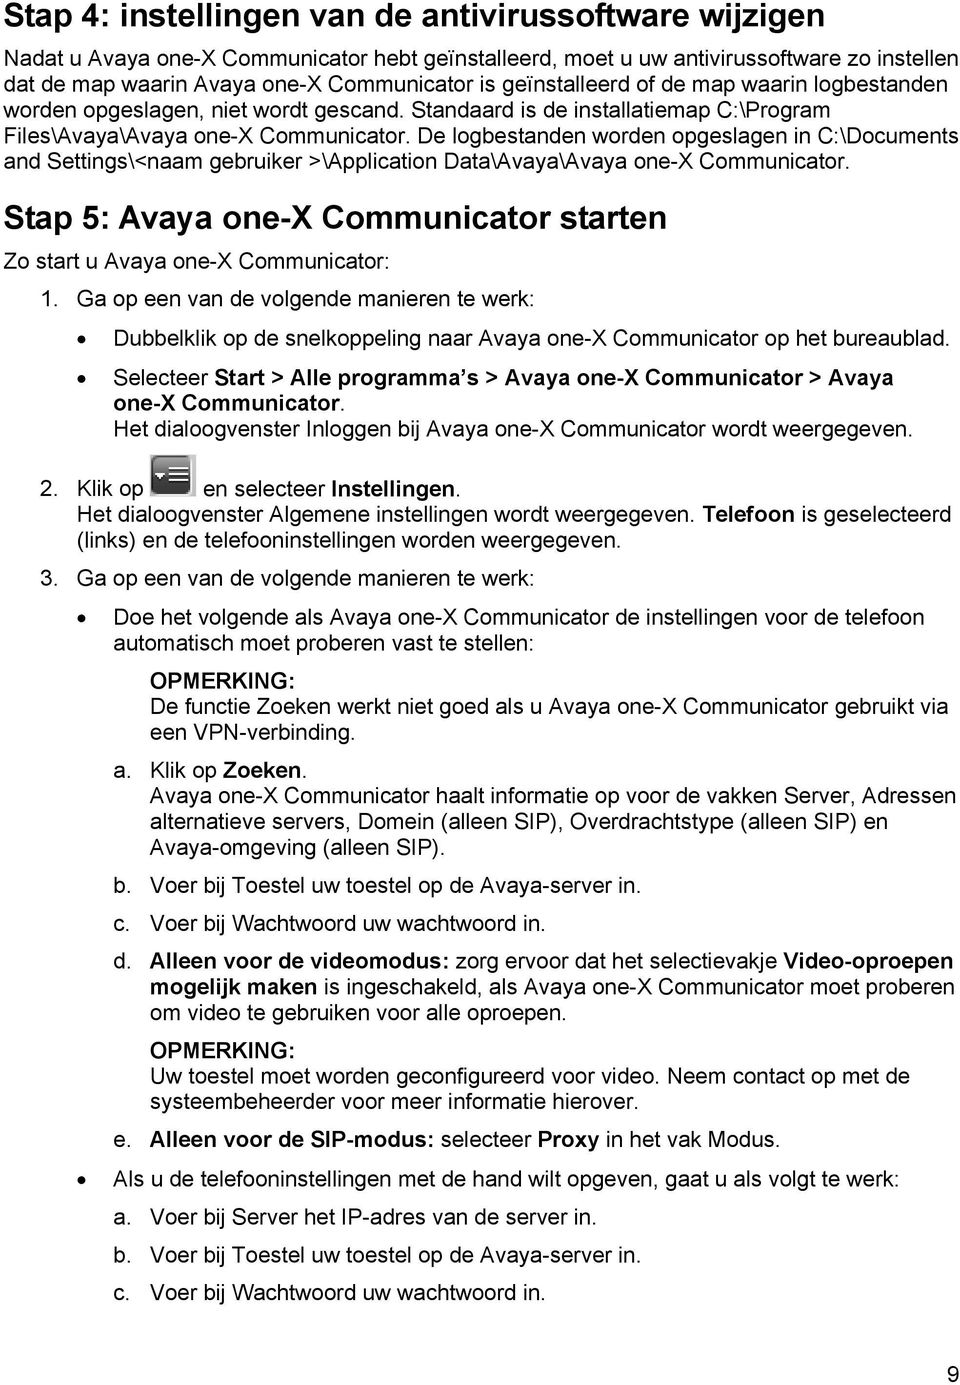 De logbestanden worden opgeslagen in C:\Documents and Settings\<naam gebruiker >\Application Data\Avaya\Avaya one-x Communicator.